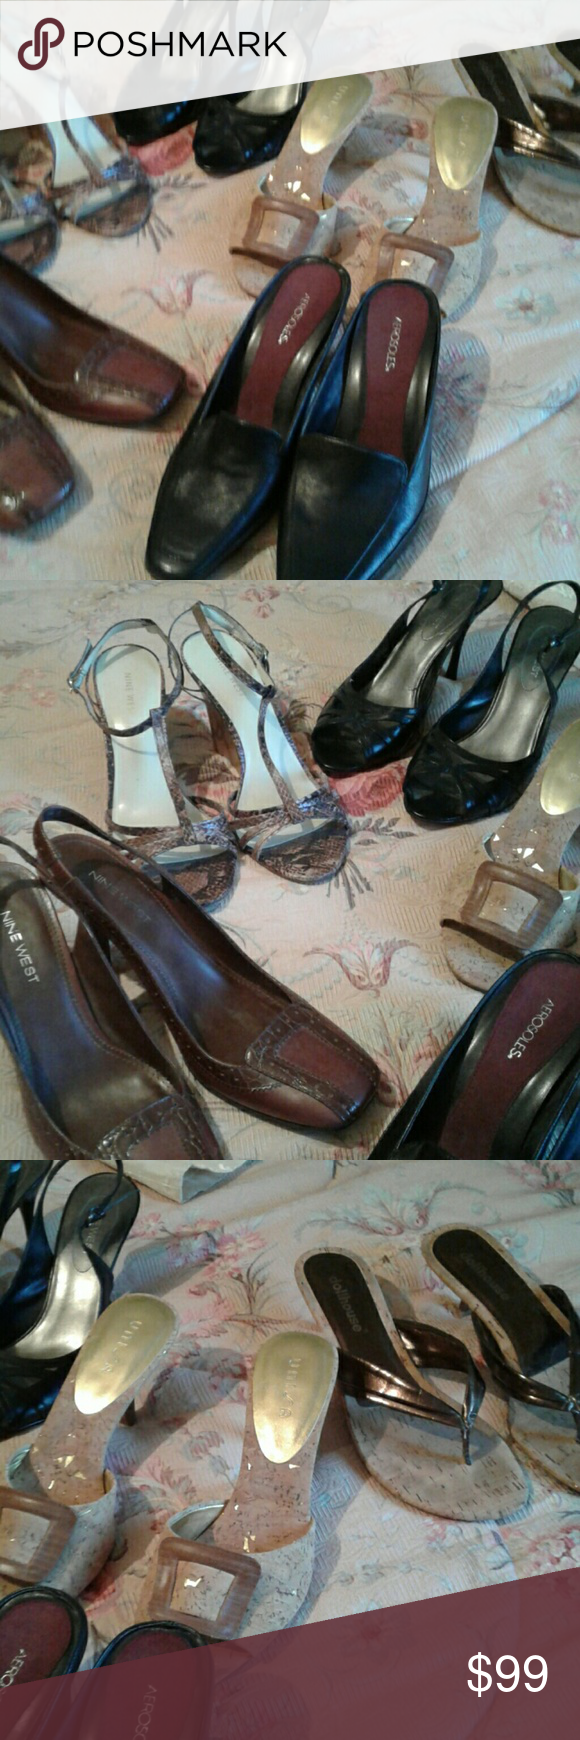 0fd4388f98038 6 Pair of Shoes all size 7 1 2 Sold Together That s Right all Six